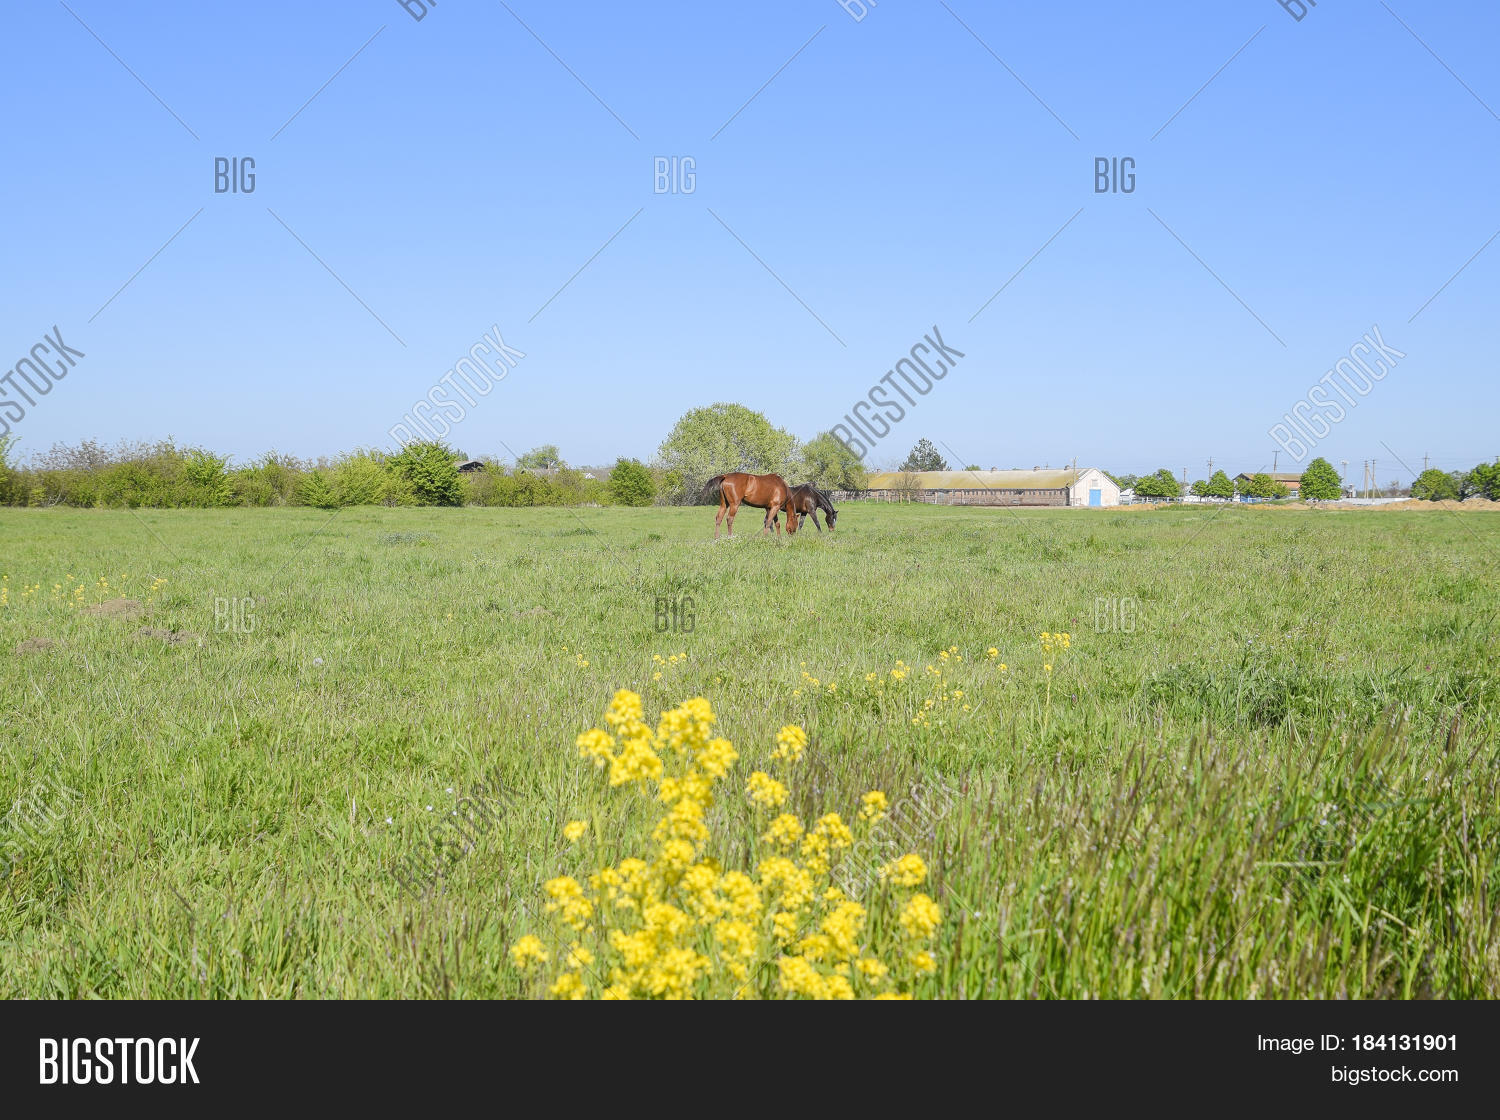 Horses On Grass Image Photo Free Trial Bigstock